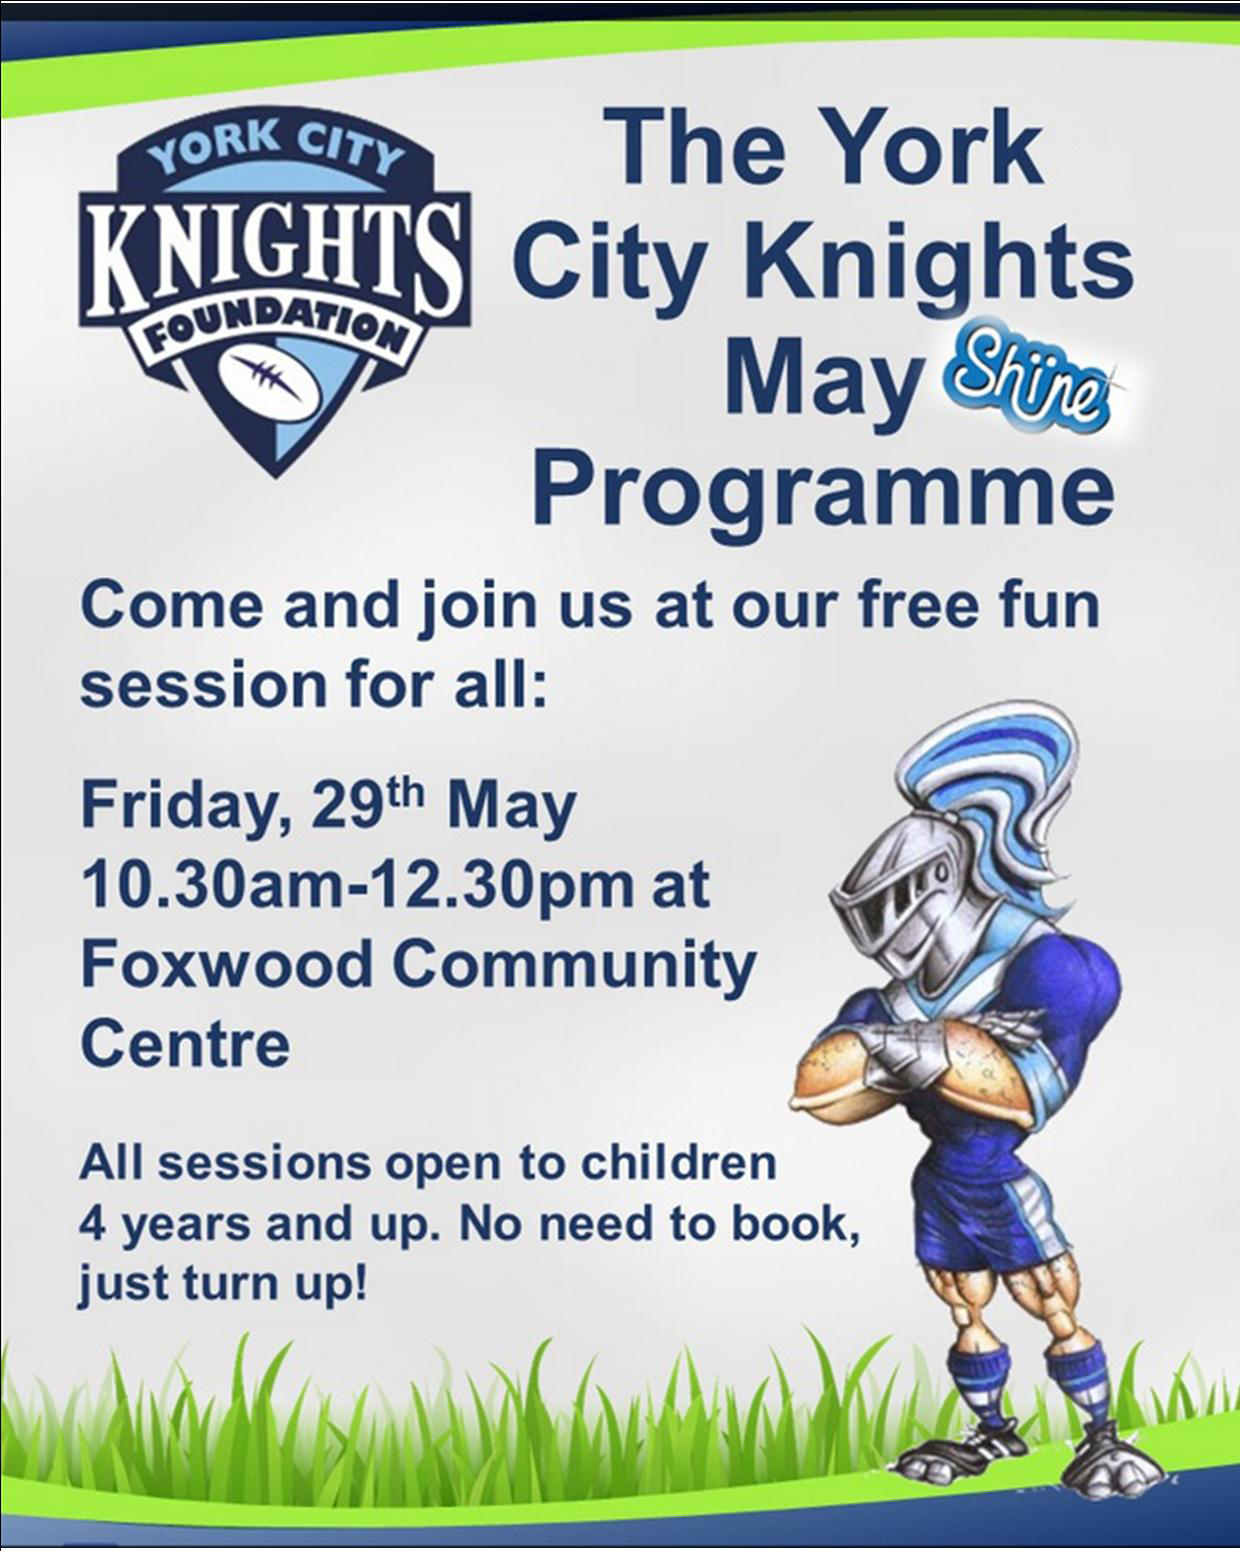 Knights event 29th May 2015